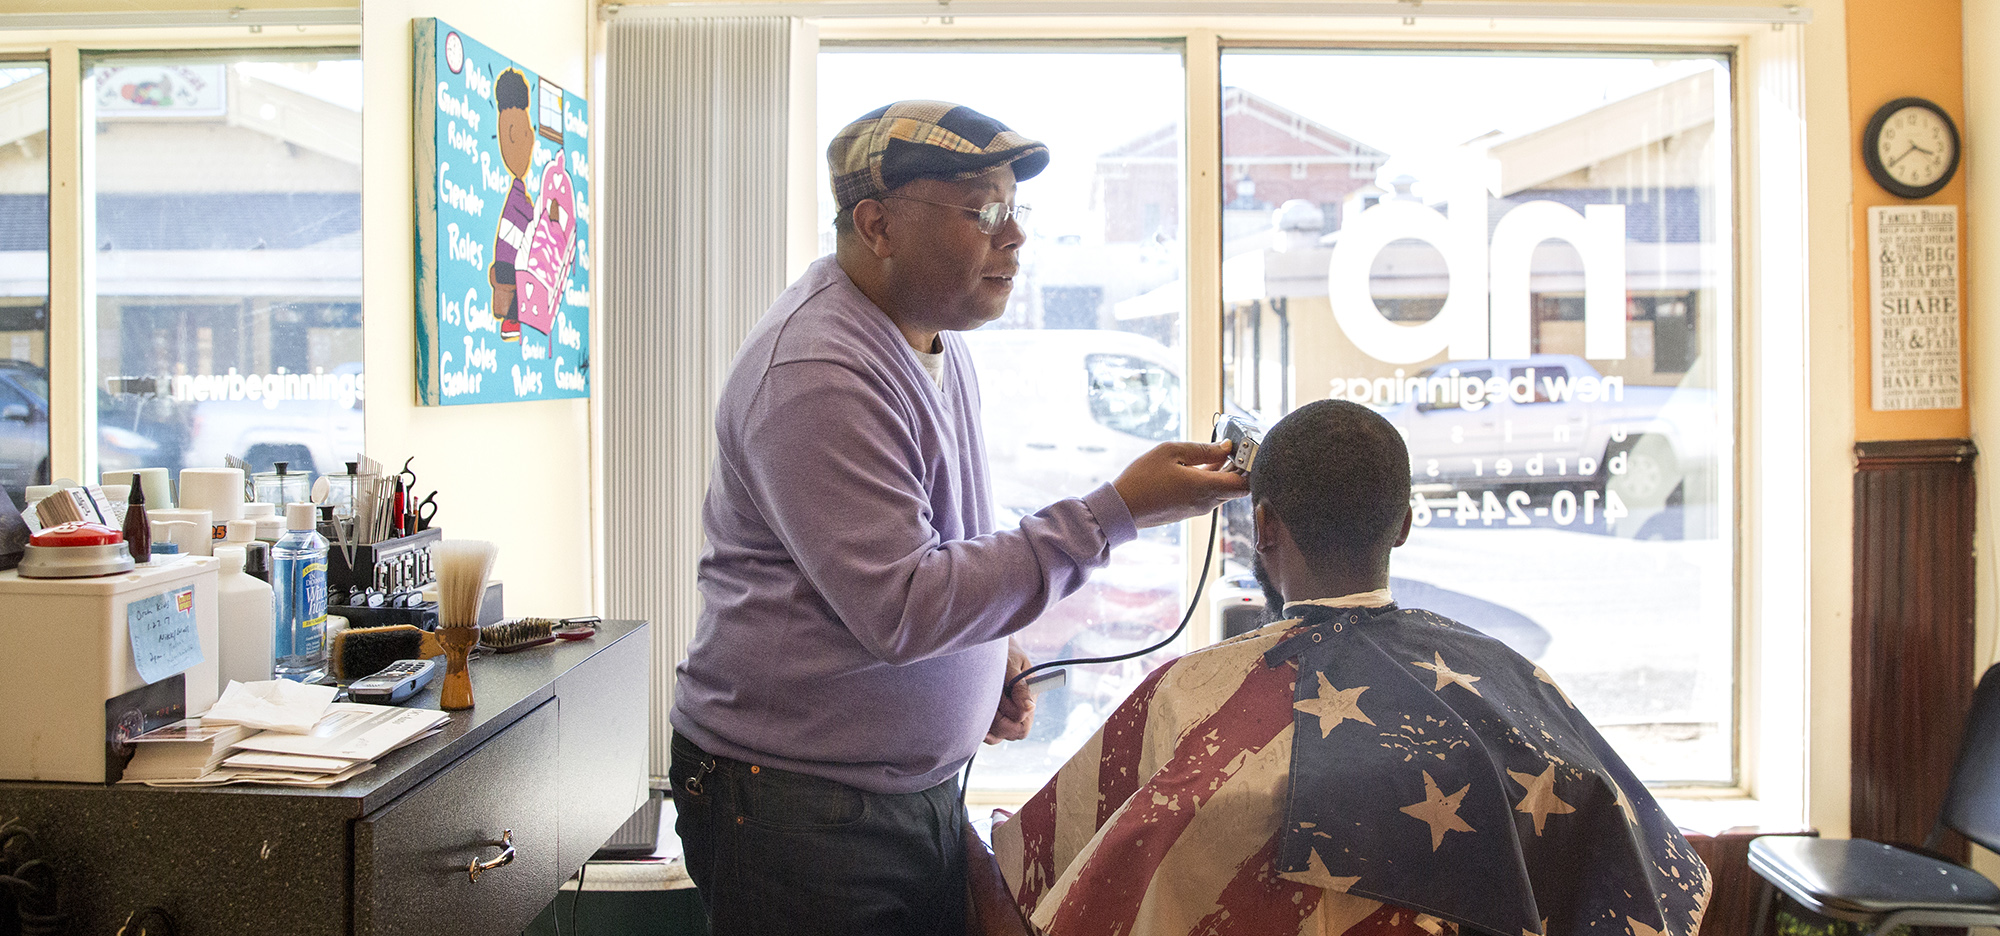 Hollins Market, across the street, and a Jerrel Gibbs painting on the wall exemplify the mix of commerce and culture available at New Beginnings Unisex Barbershop, where Troy Staton has a customer in the chair. Photo by Antonella Crescimbeni